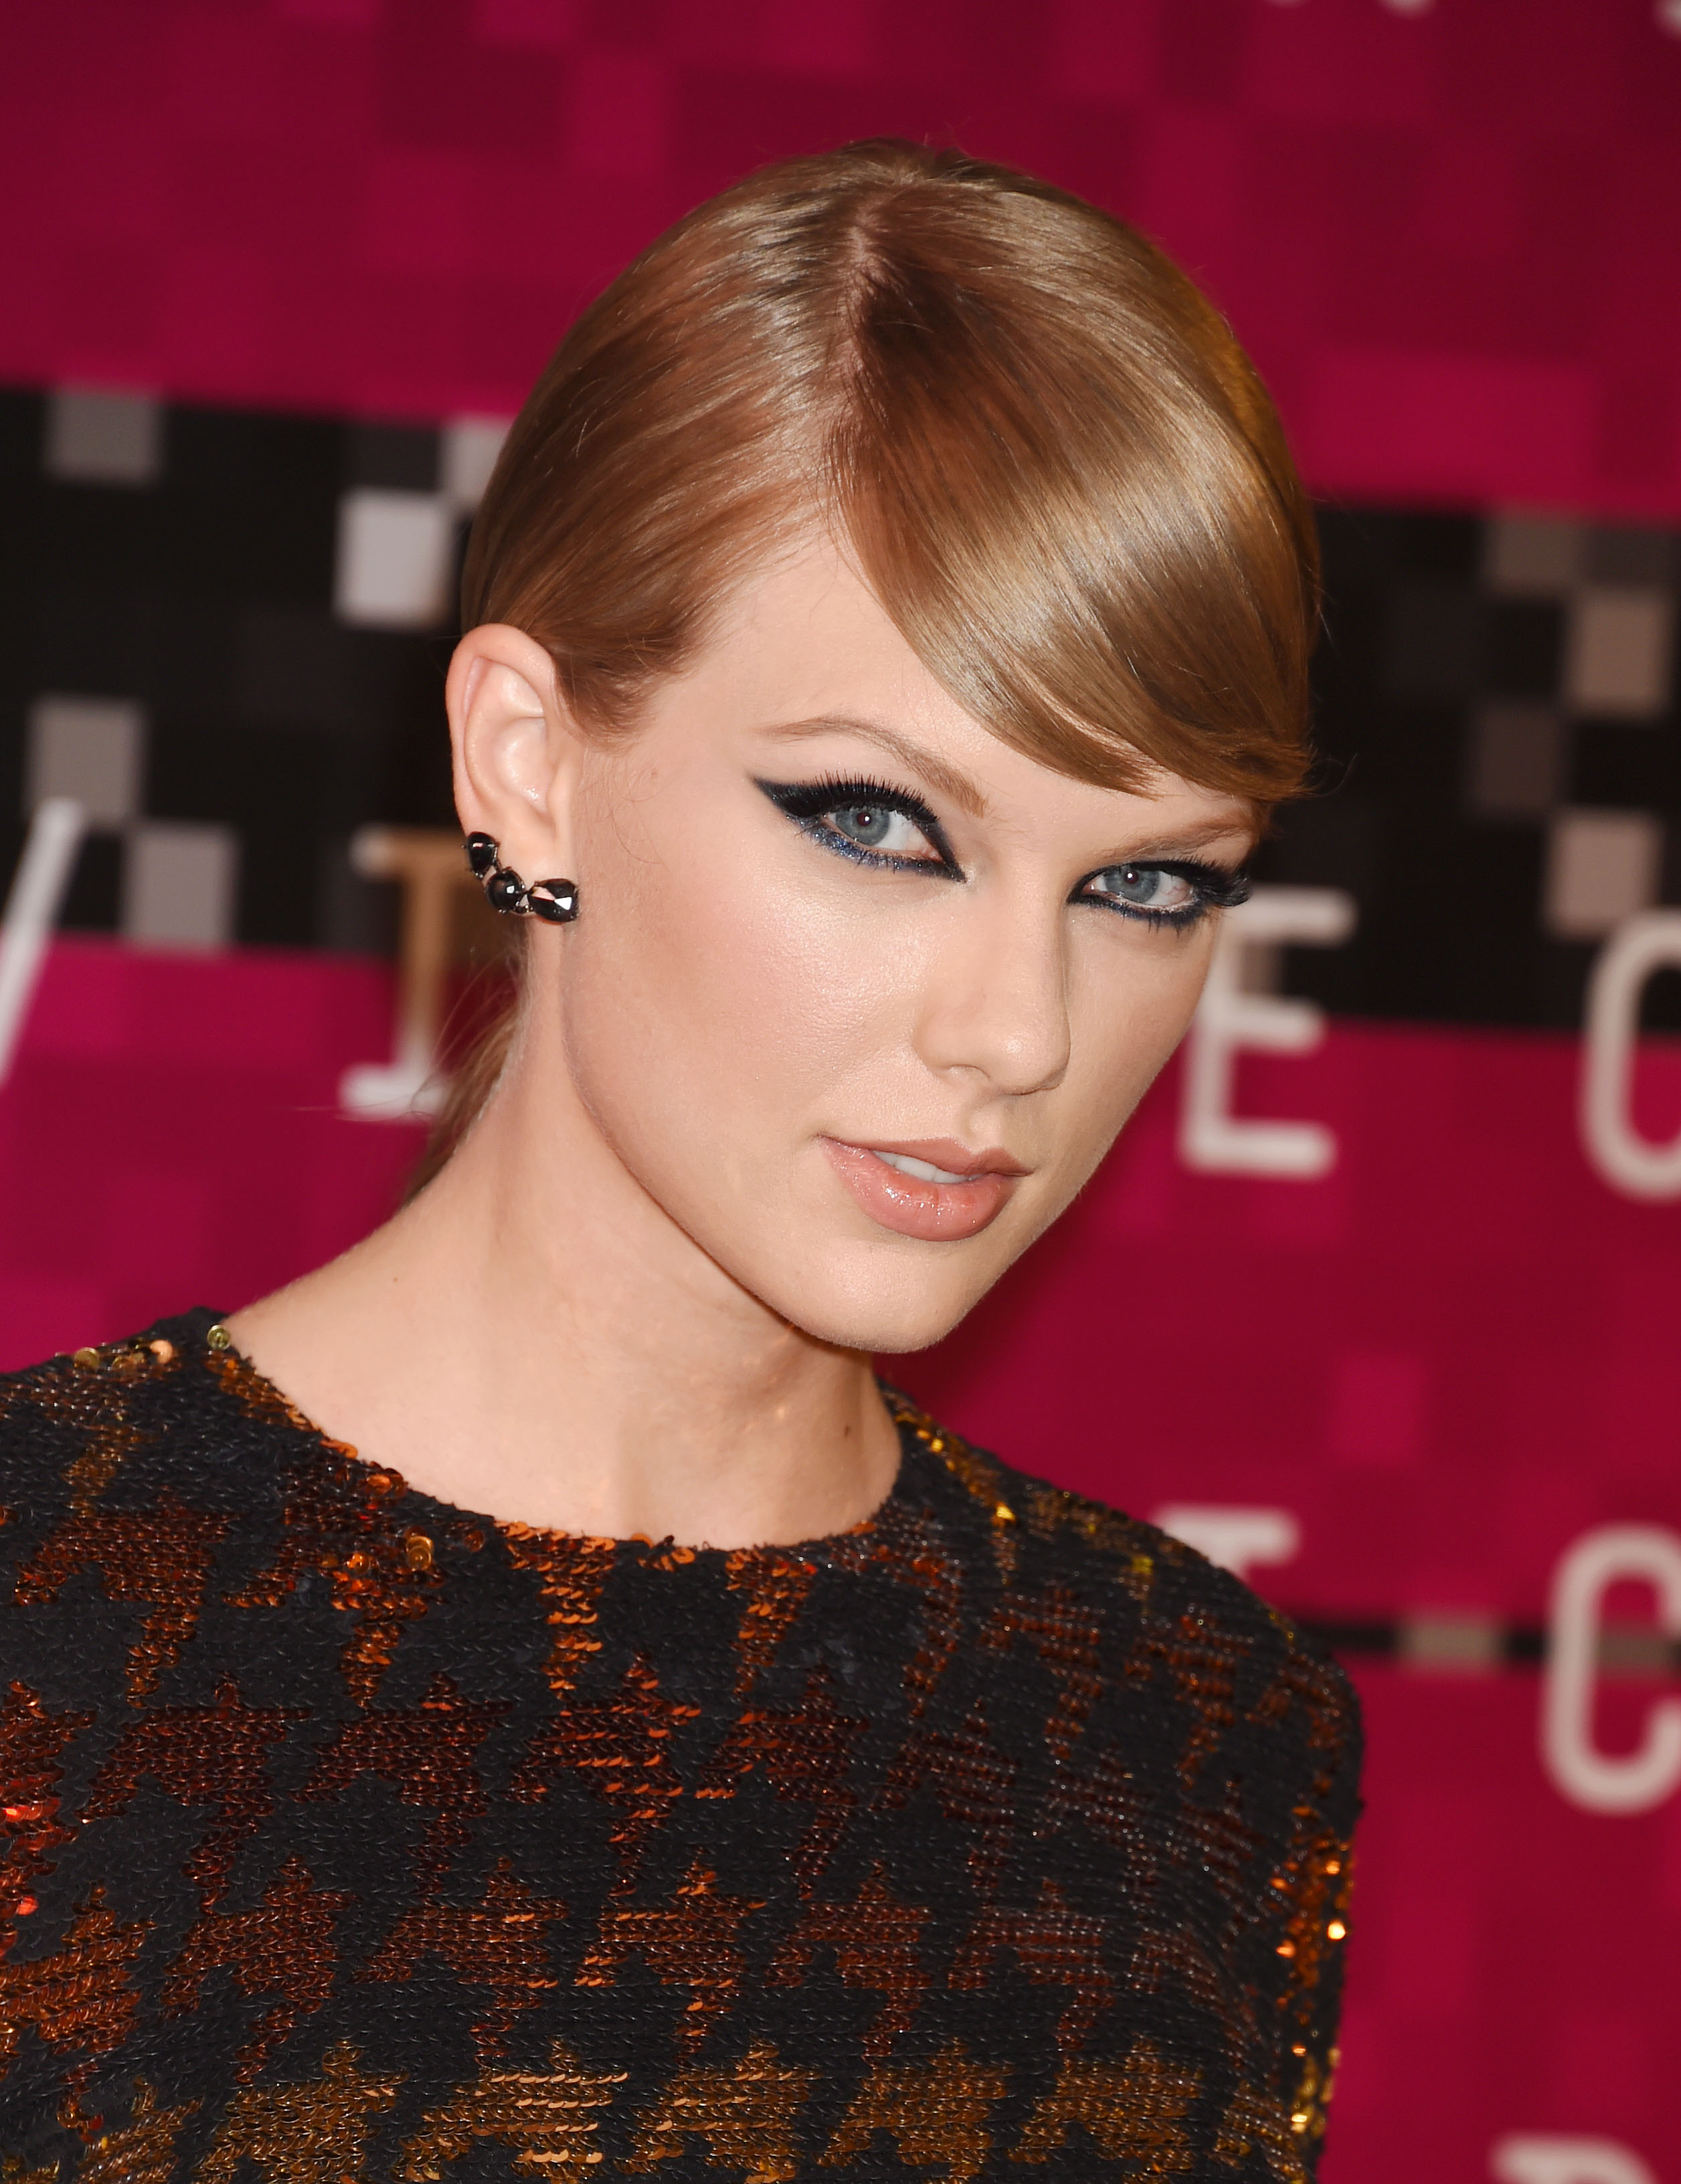 Taylor Swift at the 2015 MTV Video Music Awards in Los Angeles on Aug. 30, 2015.